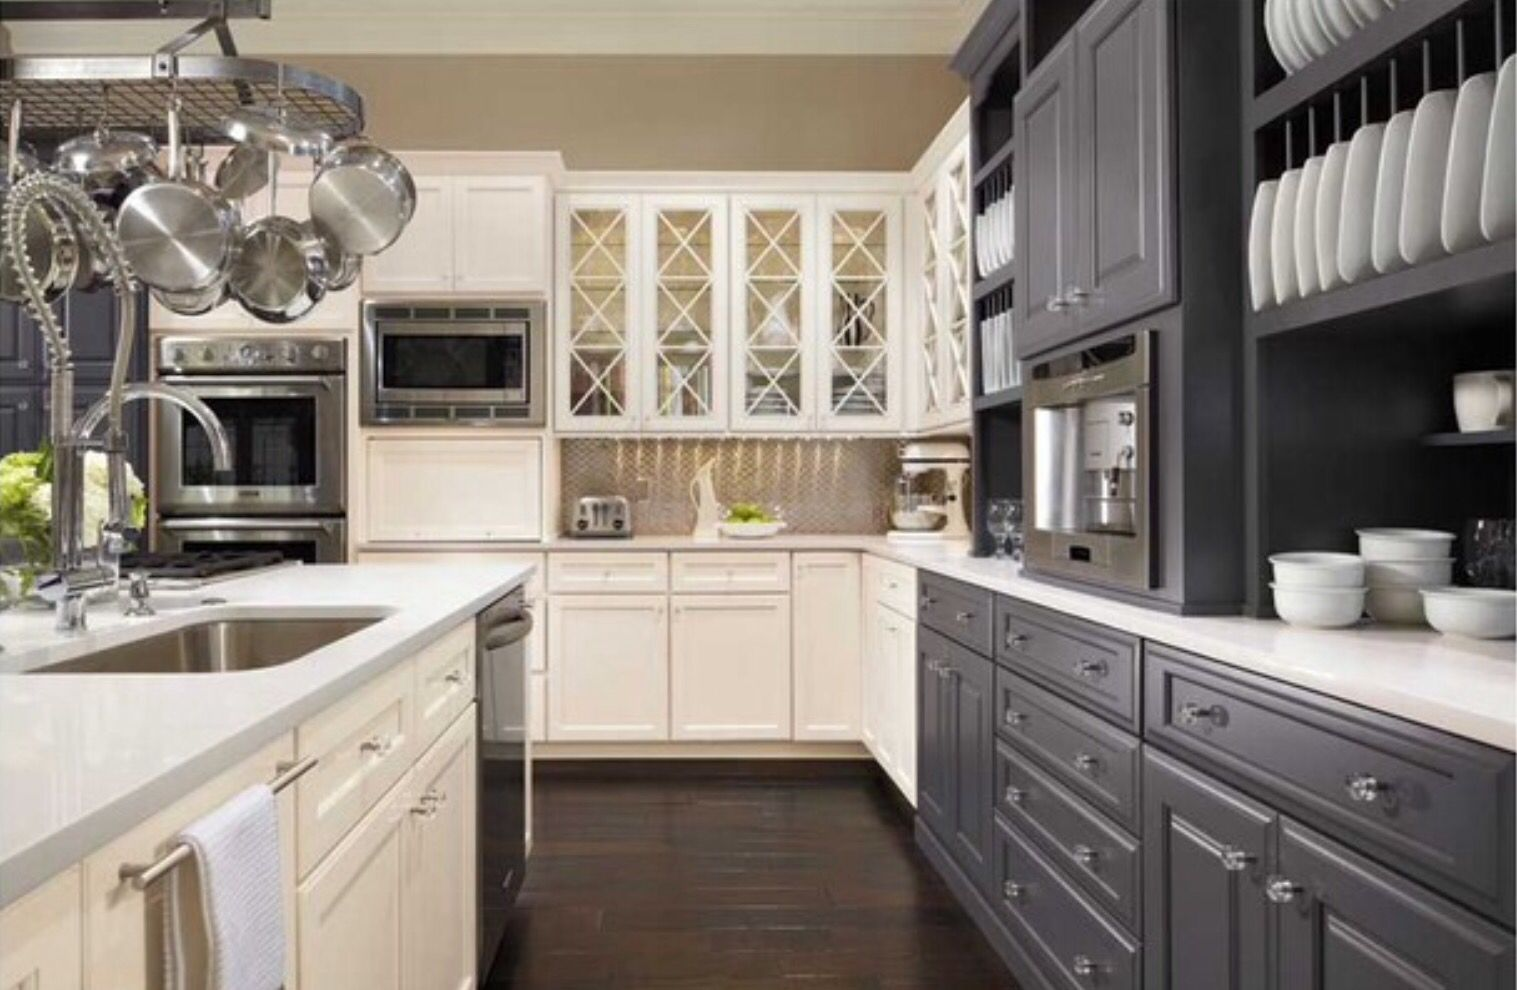 Sherwin Williams: Arcade White on cabinets & Web Gray | Capital ...